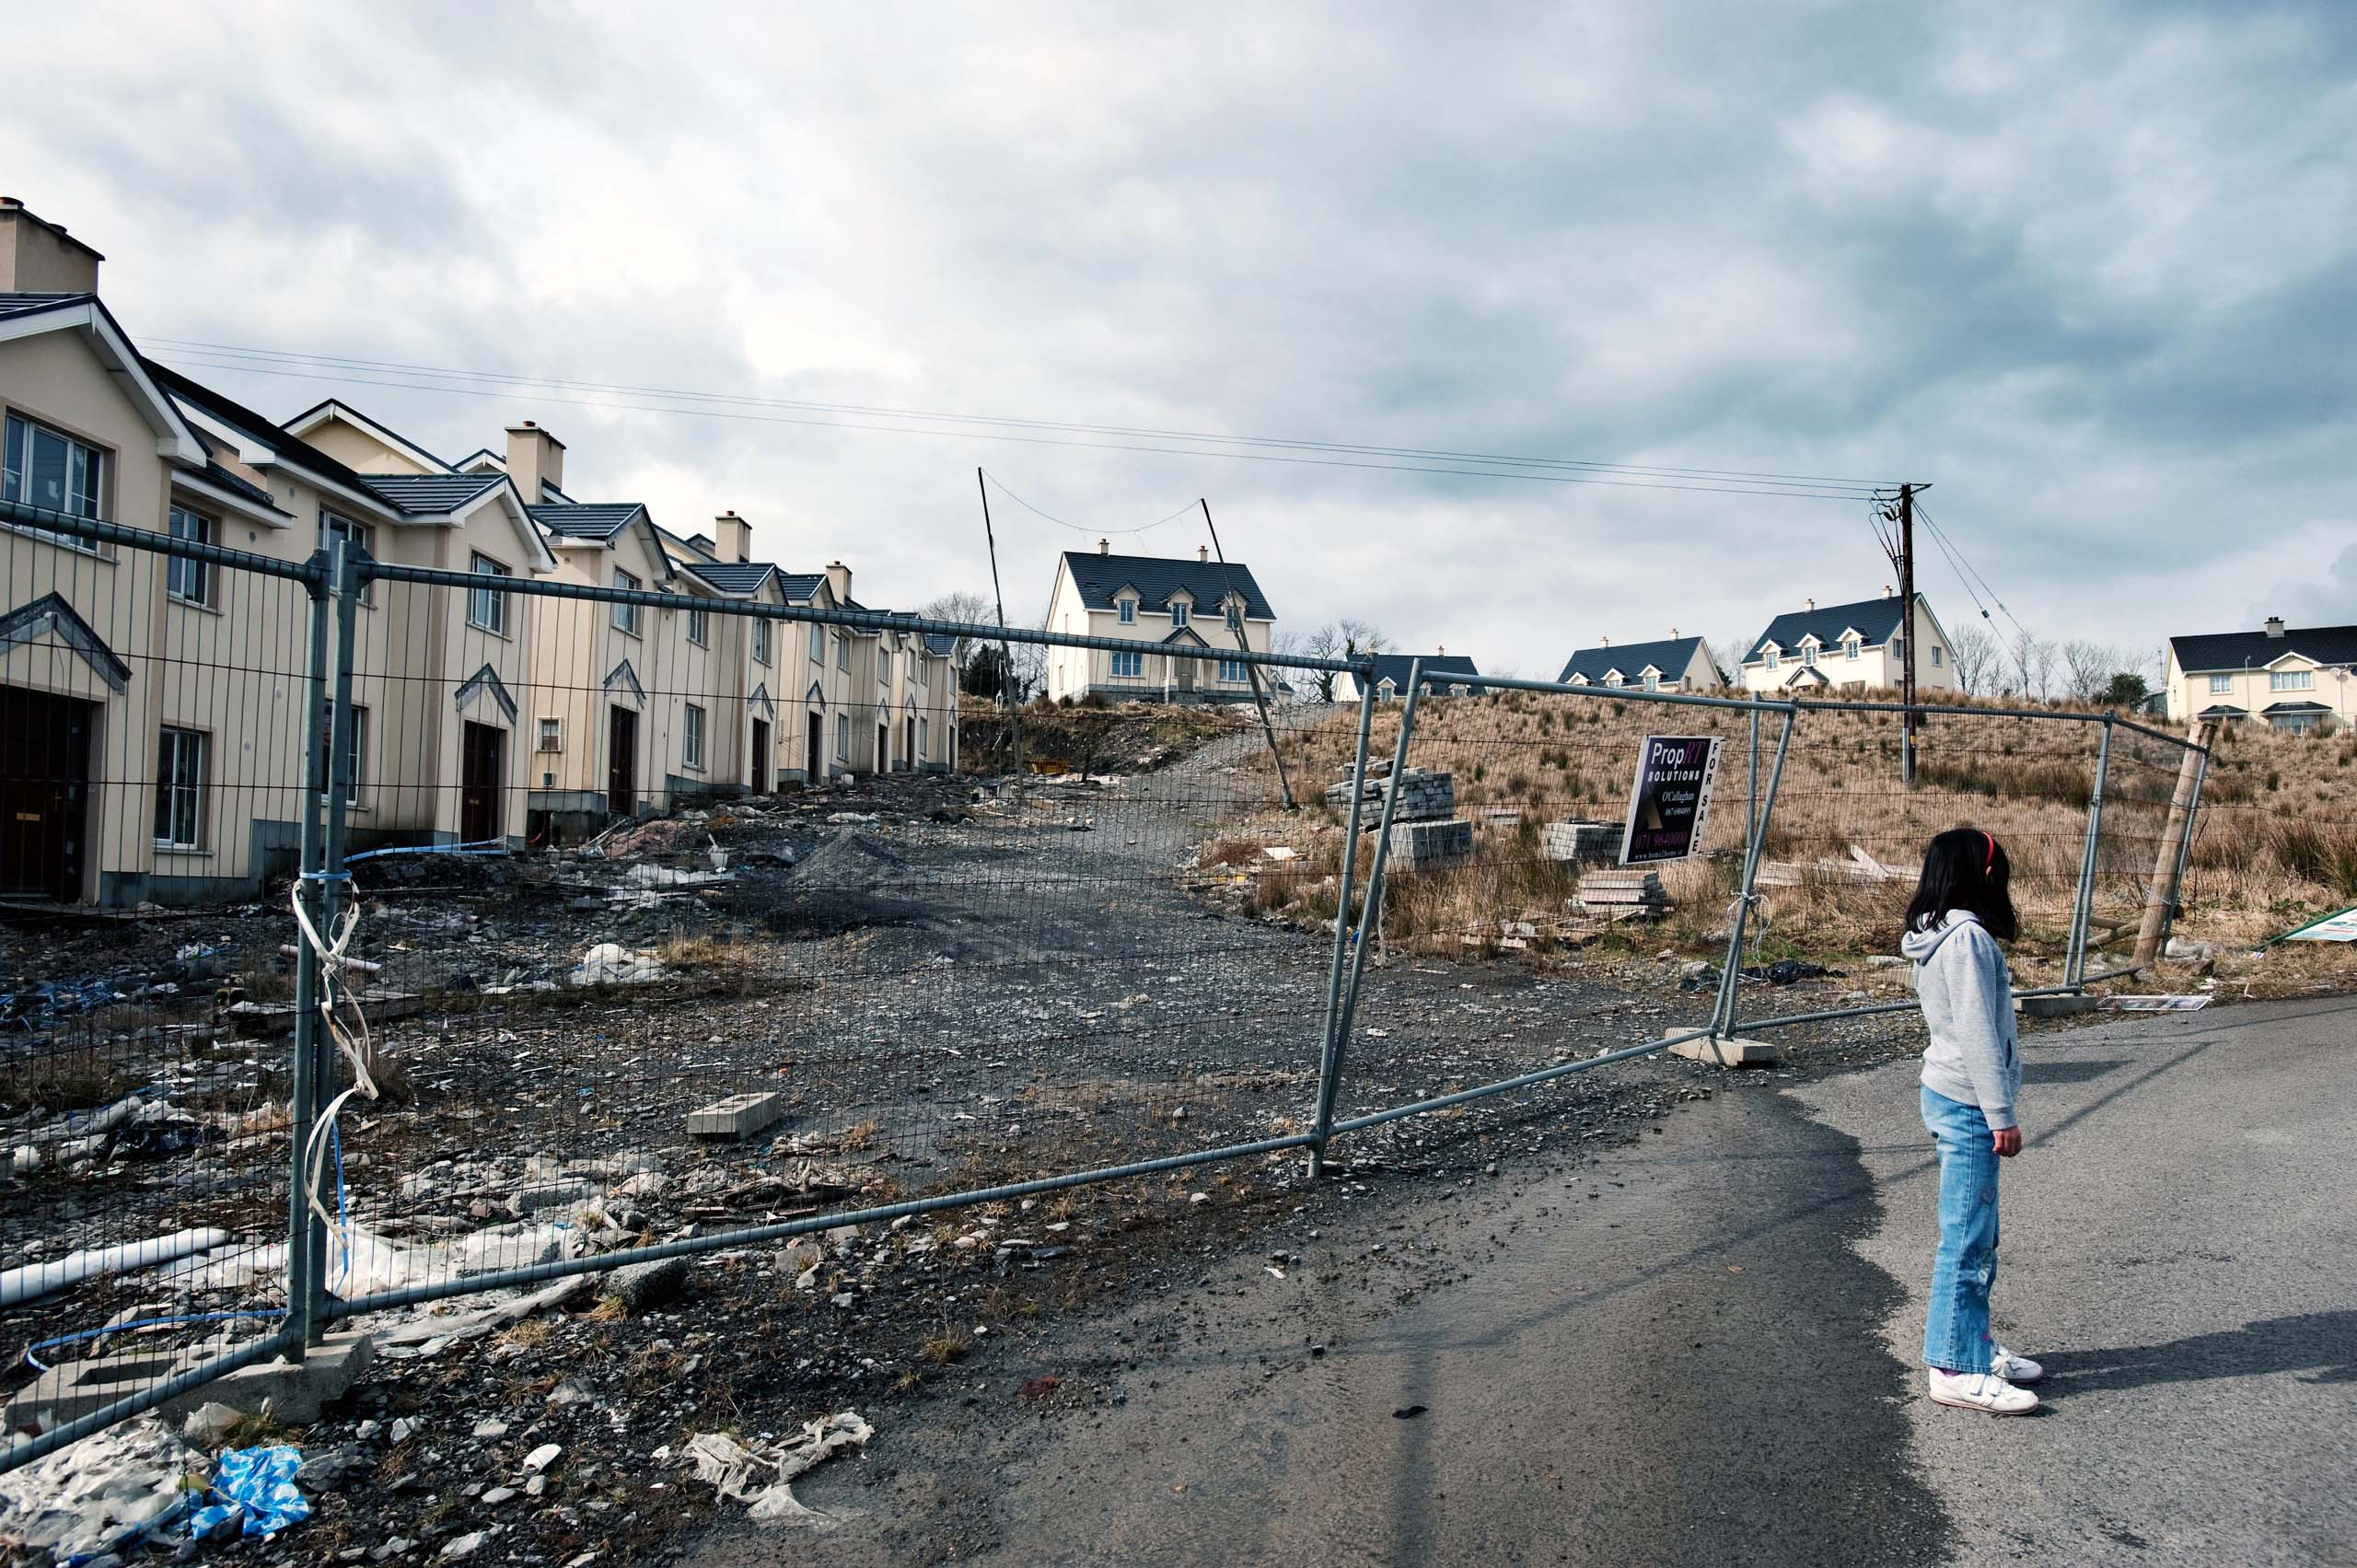 Cnoc Aniuir,  one of six unfinished housing estates on the Carrick-Drumshanbo Road in County Leitrim, Ireland